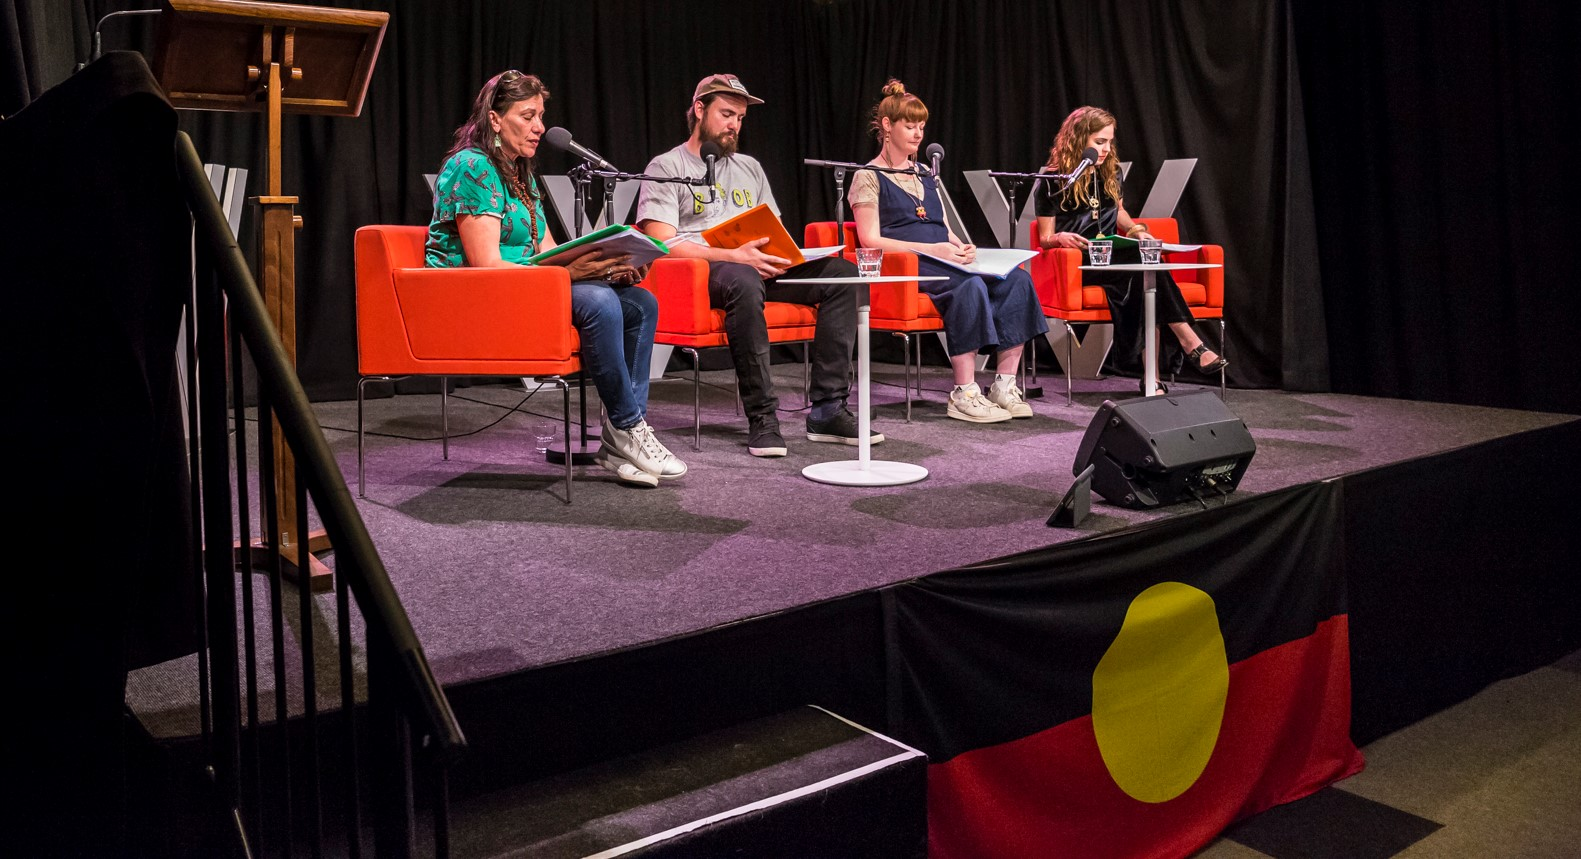 Photo of four people on stage, seated on red armchairs, with an Aboriginal flag attached to the front of the stage